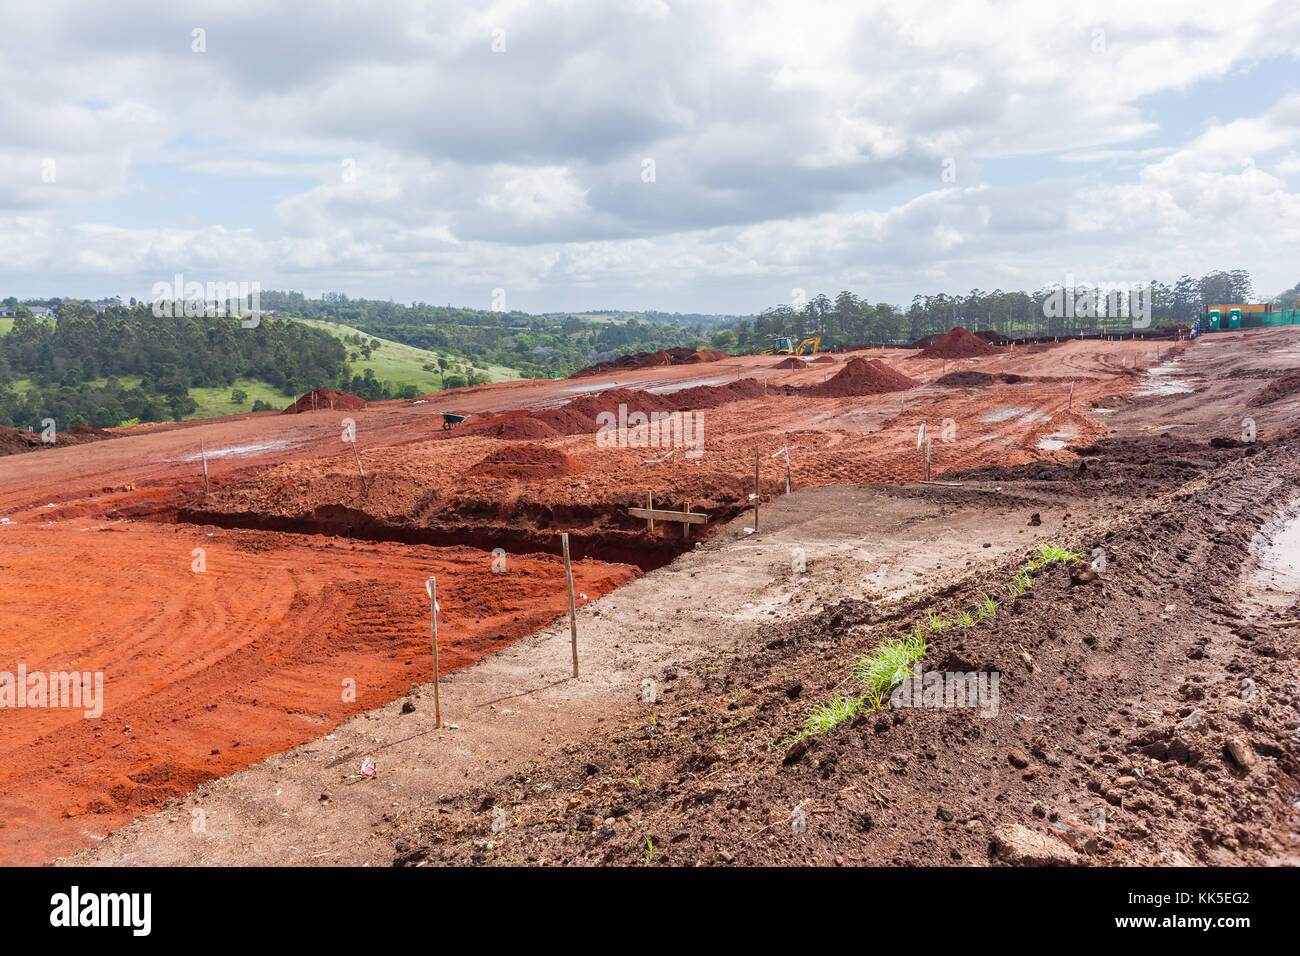 Industrial earthworks building foundations layout construction site landscape Stock Photo